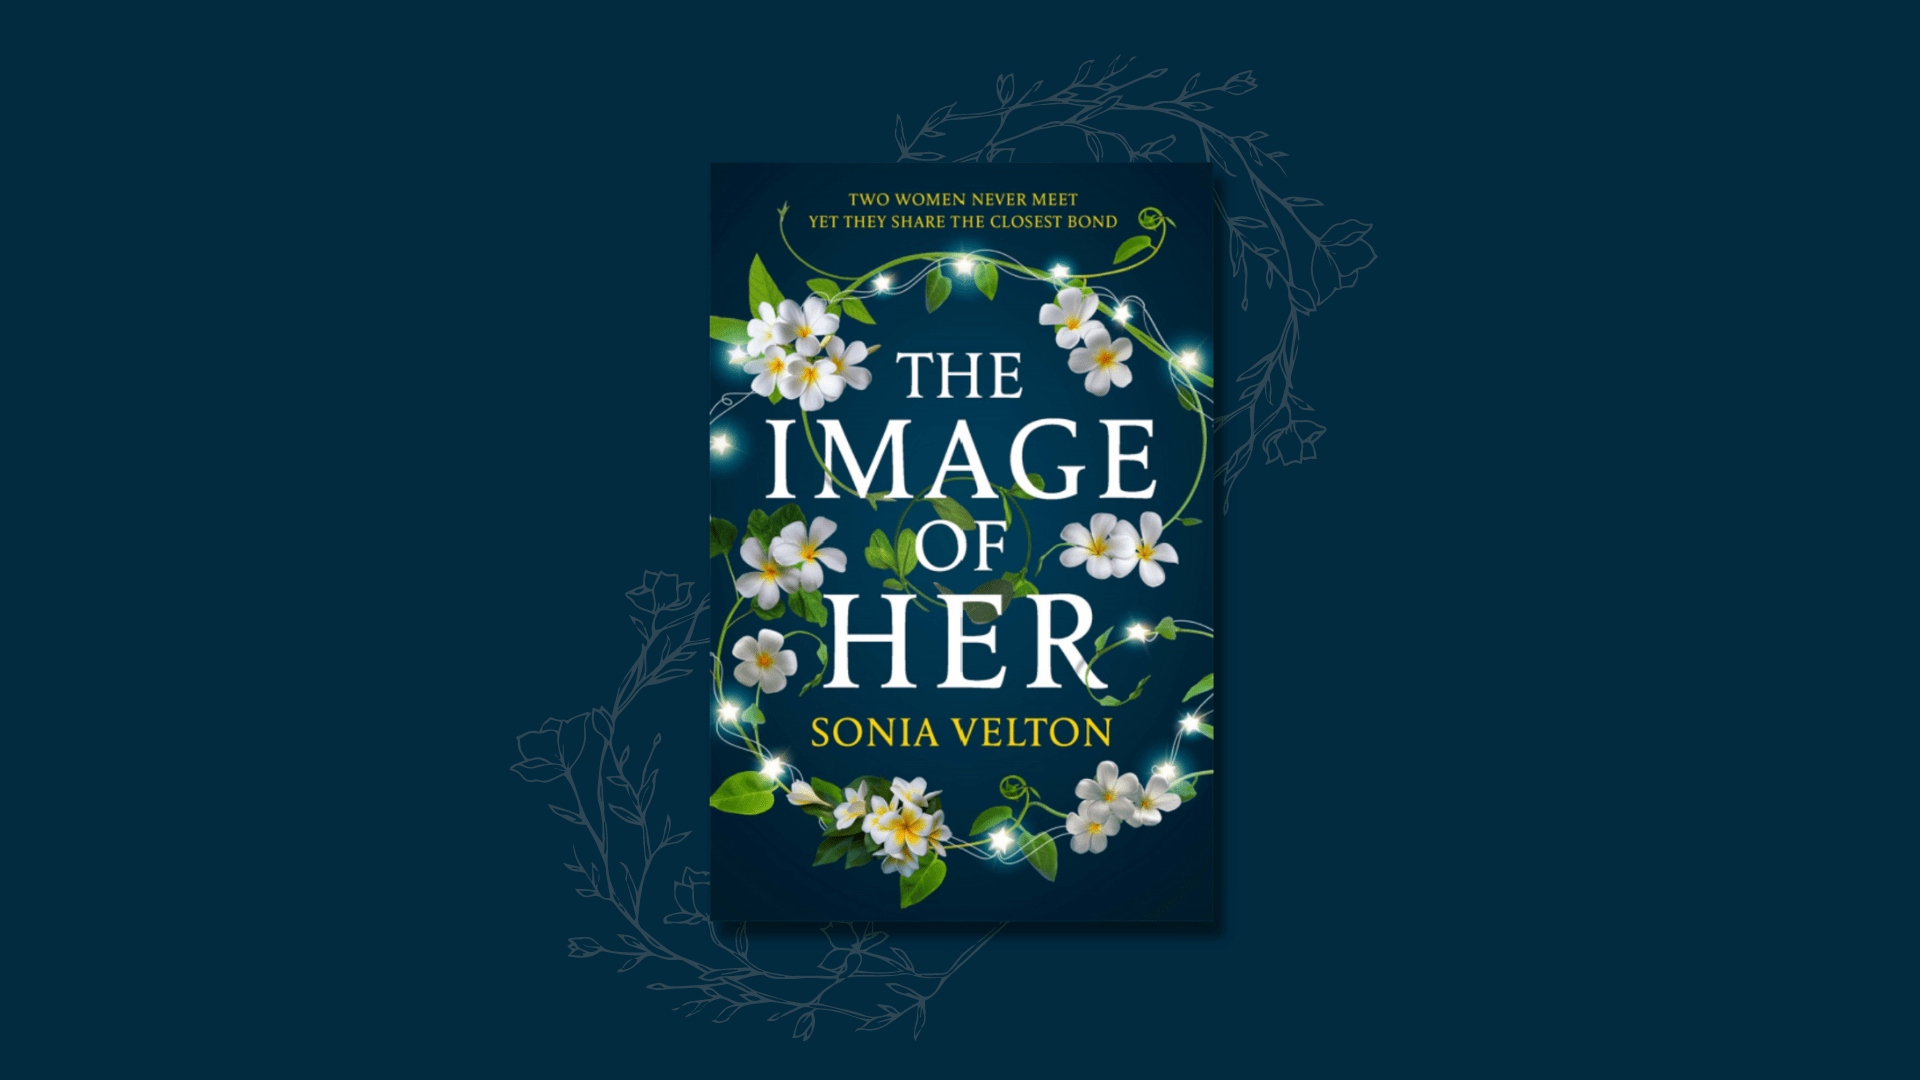 The cover of The Image of Her by Sonia Velton against a dark blue background